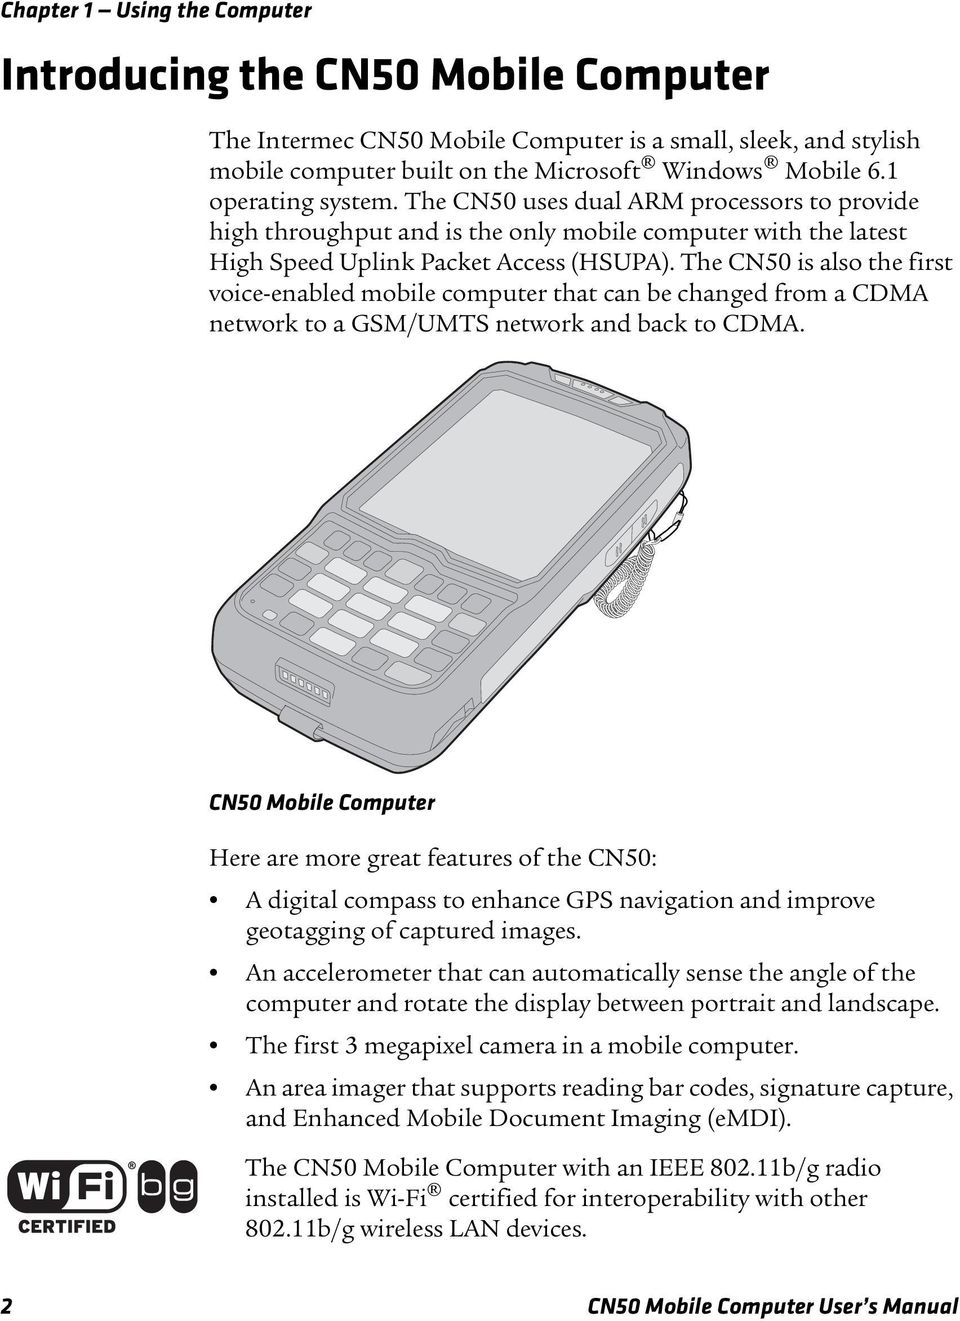 The CN50 is also the first voice-enabled mobile computer that can be changed from a CDMA network to a GSM/UMTS network and back to CDMA.